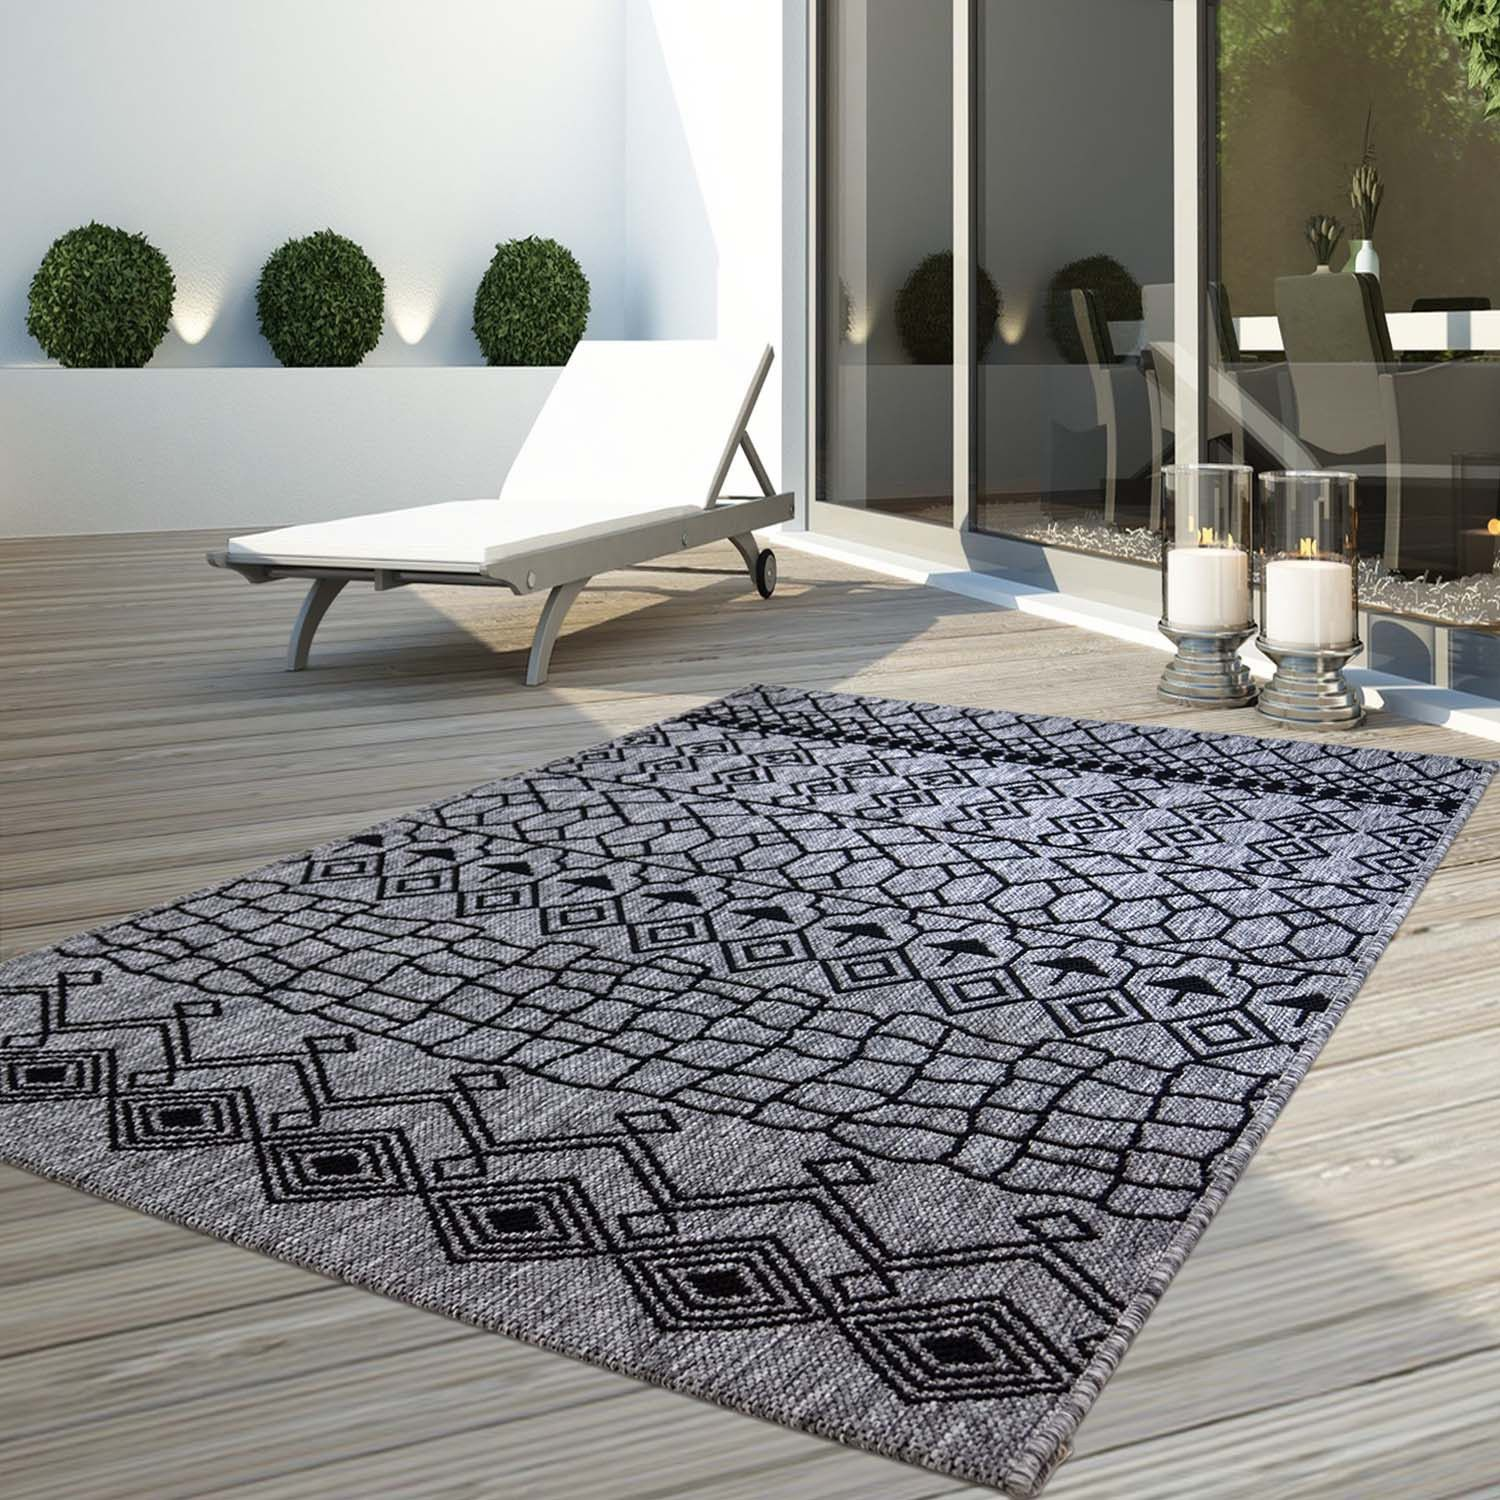 Rugs Carpets Teppich Außenbereich Outdoor Wetterfest Balkon Terrasse Garten Sunout Home Furniture Diy Breadcrumbs Ie